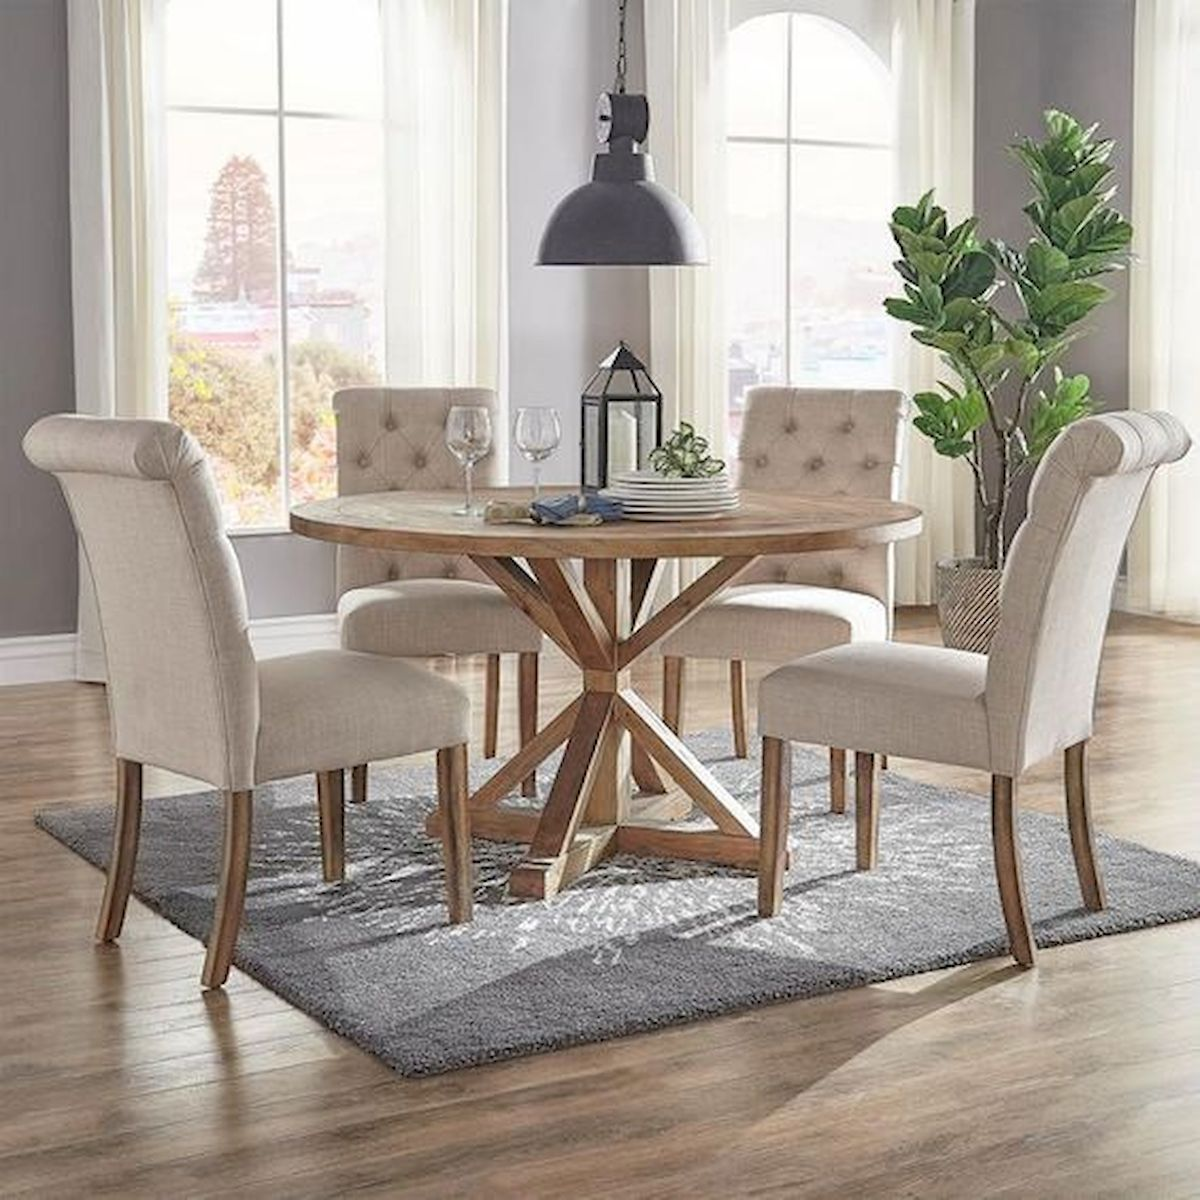 50 Nice DIY Furniture Projects for Dining Rooms Tables Design Ideas (45)